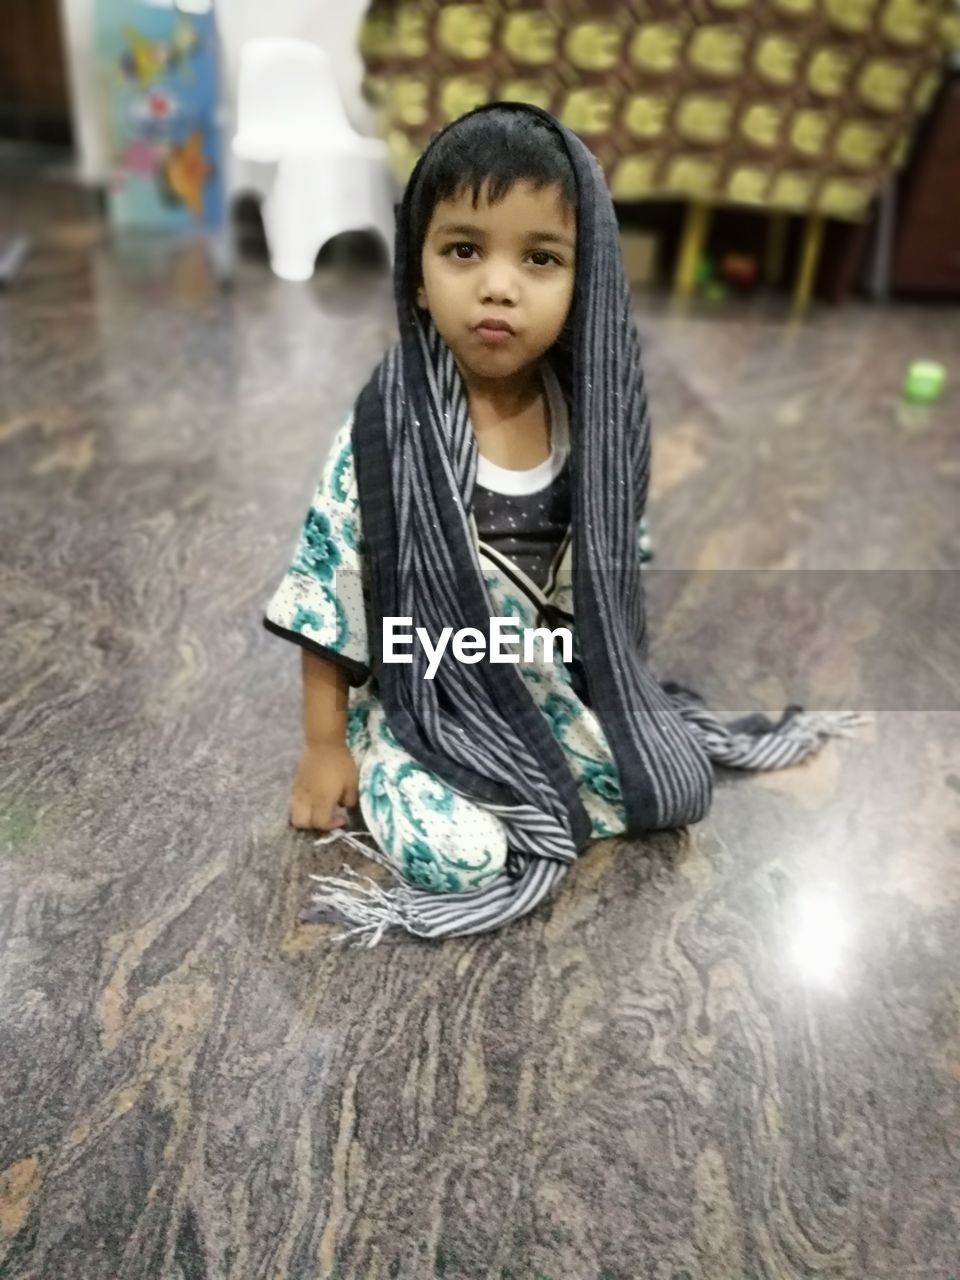 one person, real people, sitting, child, childhood, casual clothing, portrait, looking at camera, lifestyles, front view, leisure activity, girls, full length, indoors, hair, cute, looking, innocence, hairstyle, contemplation